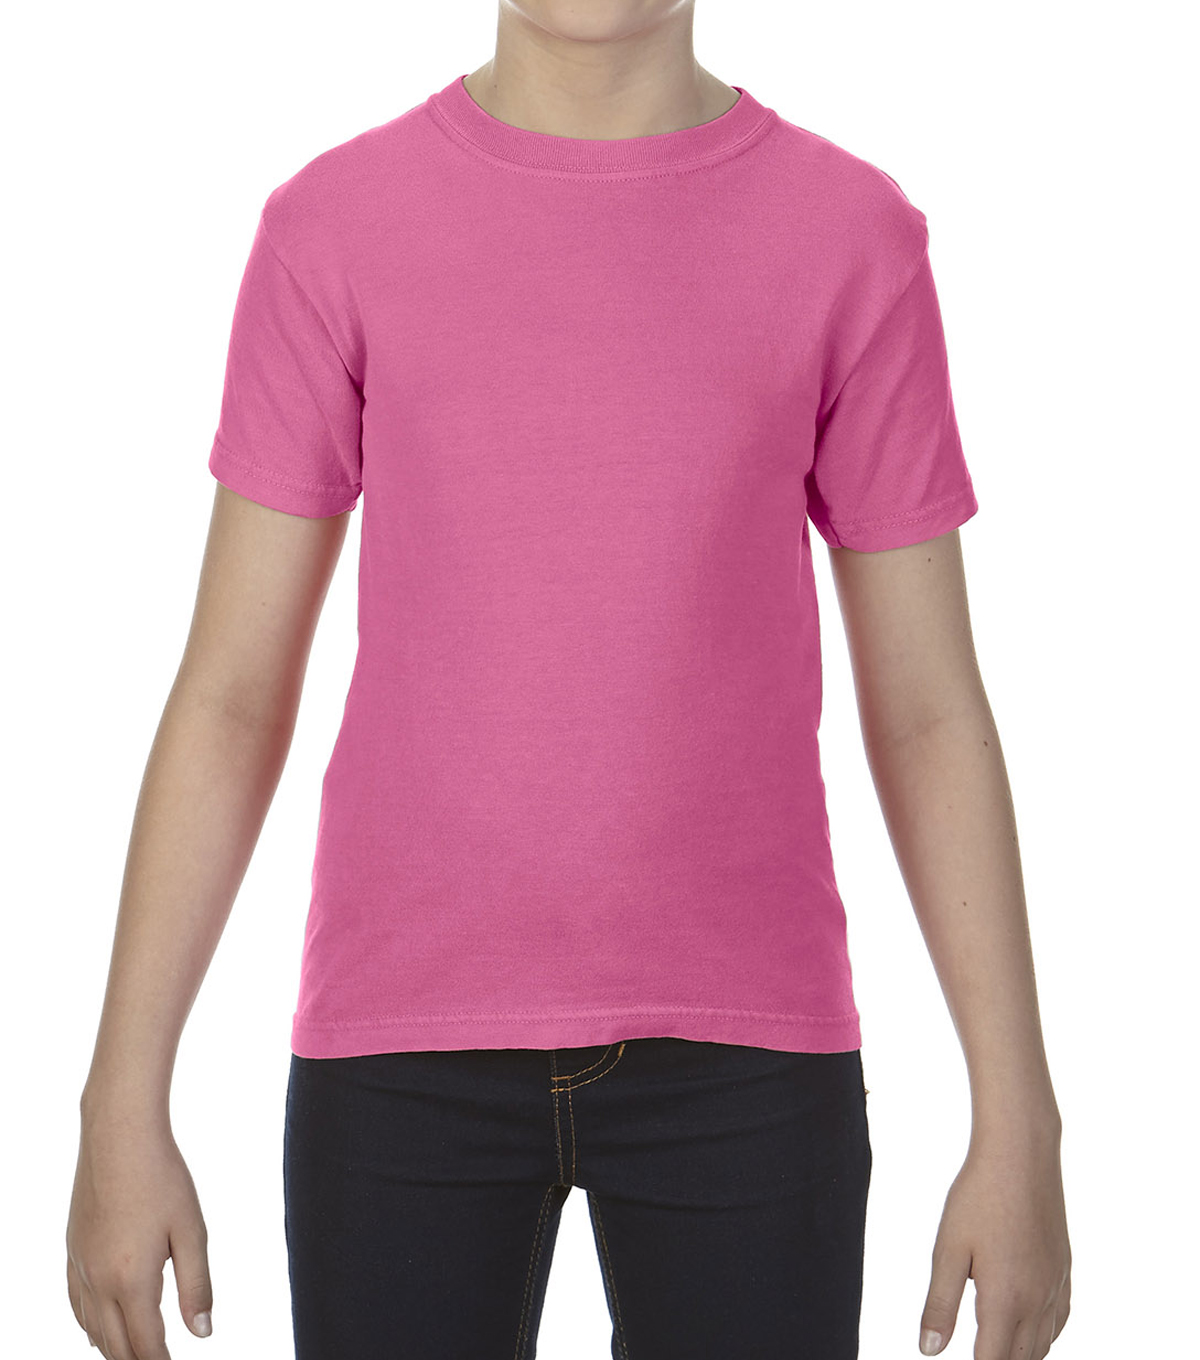 Gildan Comfort Colors 9018 Medium Youth T-Shirt, Crunch Berry